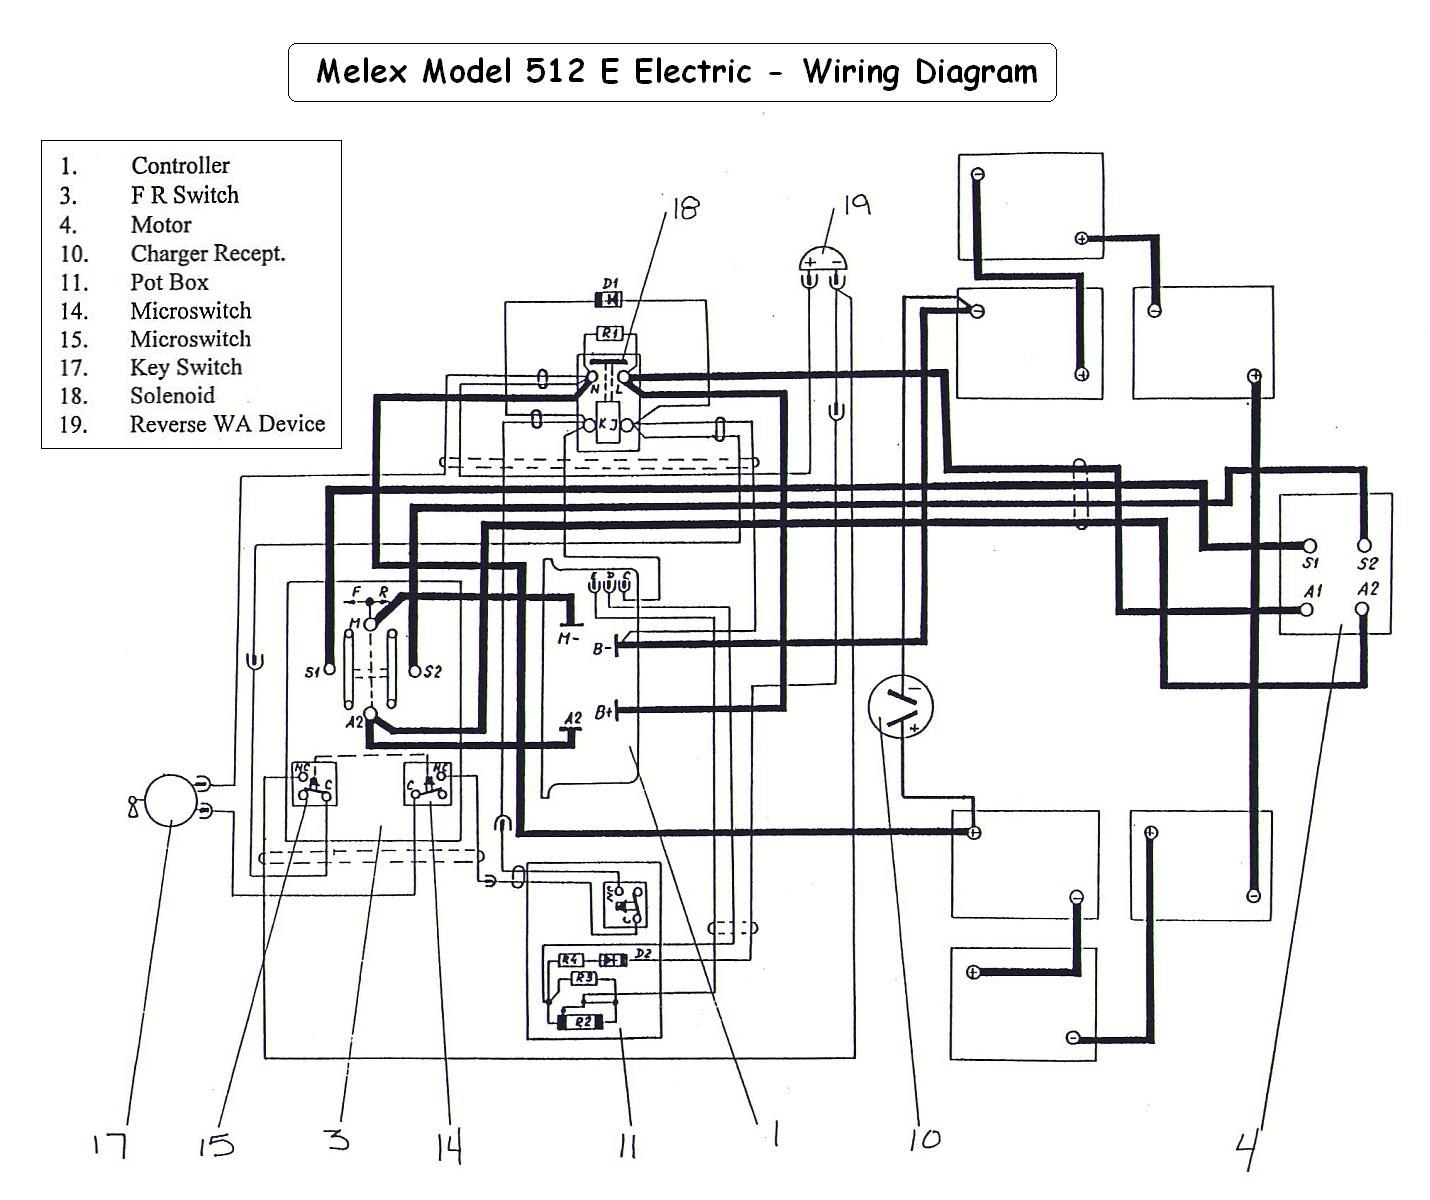 Melex512E_wiring_diagram vintagegolfcartparts com golf cart wiring diagram ezgo at edmiracle.co